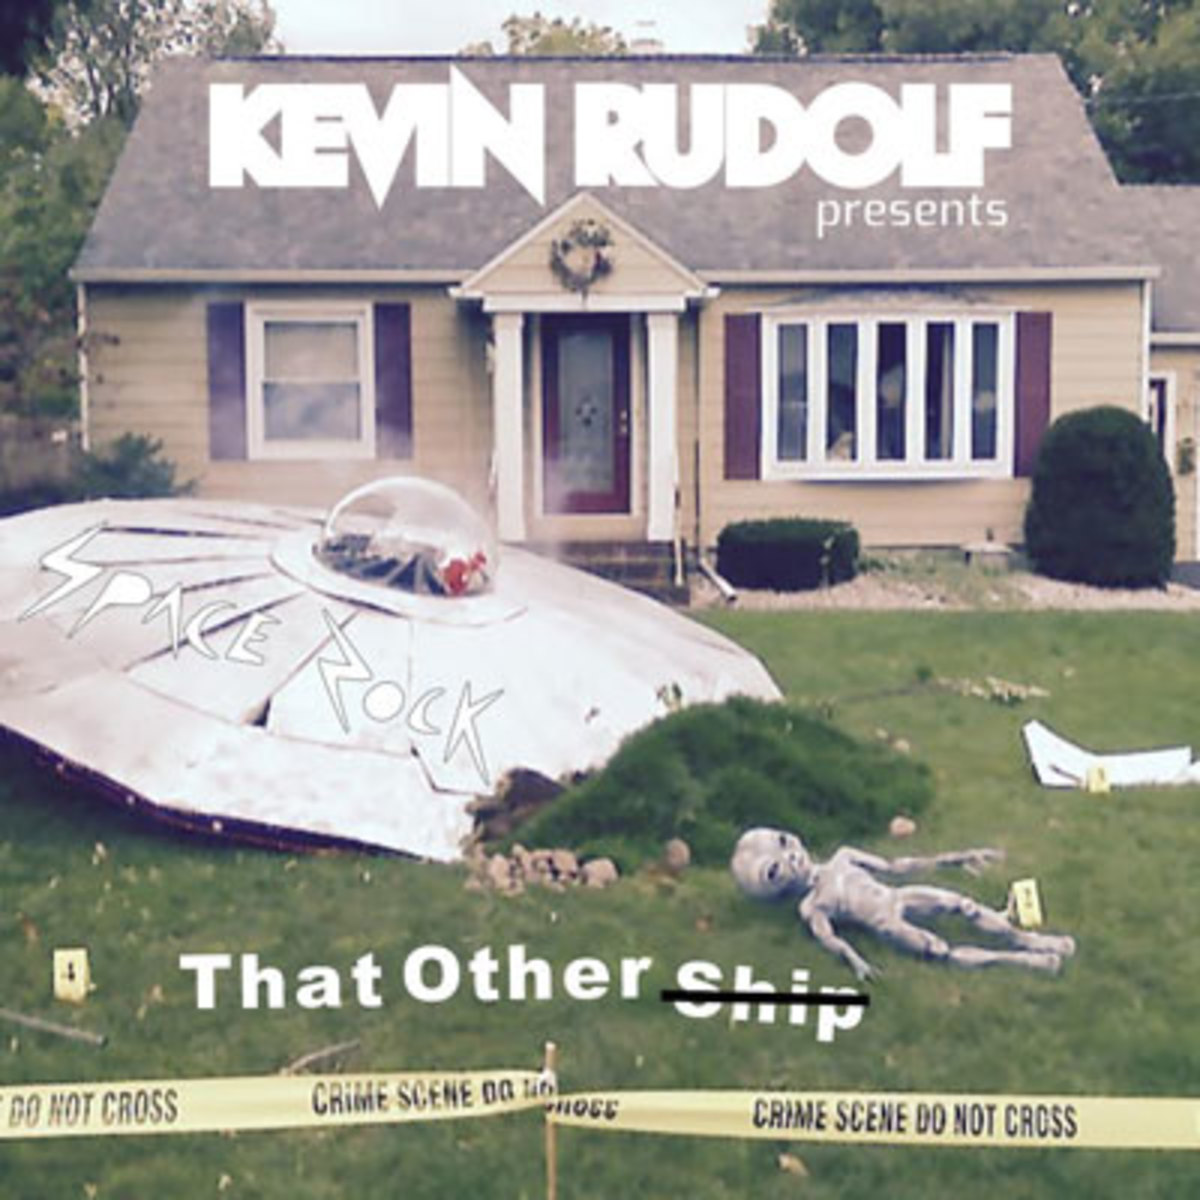 kevin-rudolf-that-other-ship-2.jpg